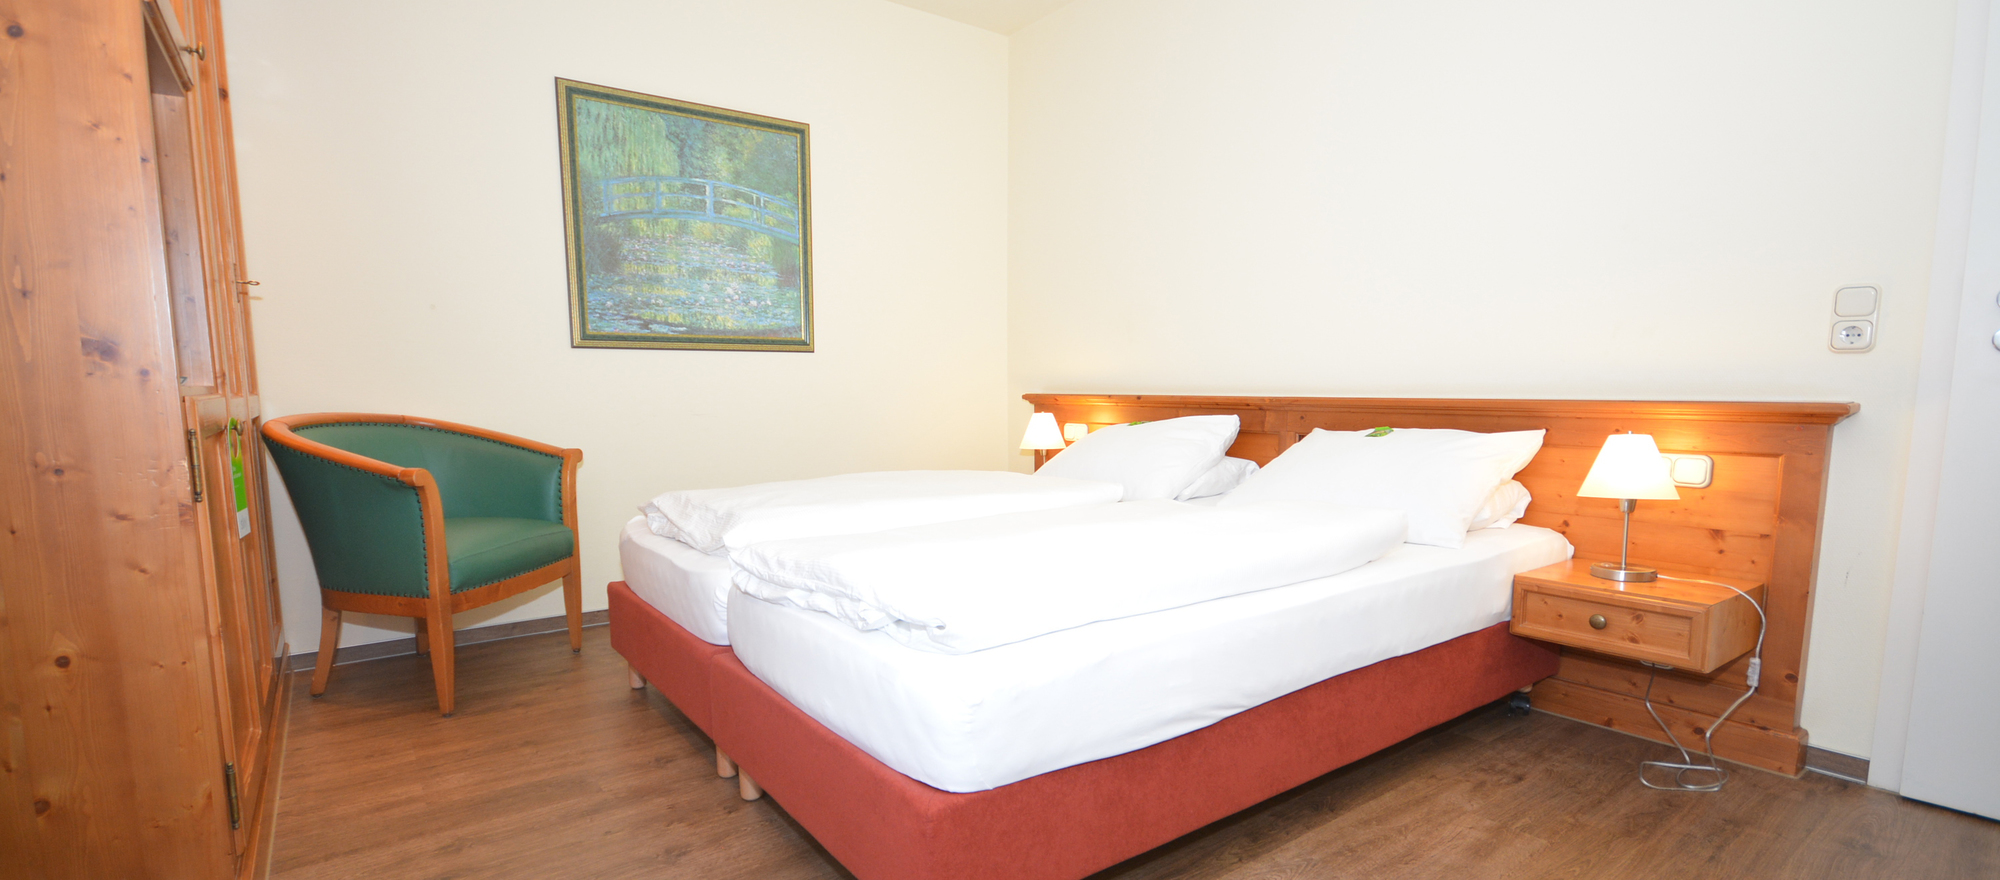 Sleep well and comfortable in the 4 star Ringhotel Kloevensteen in Hamburg-Schenefeld, in the metropolitan region Hamburg